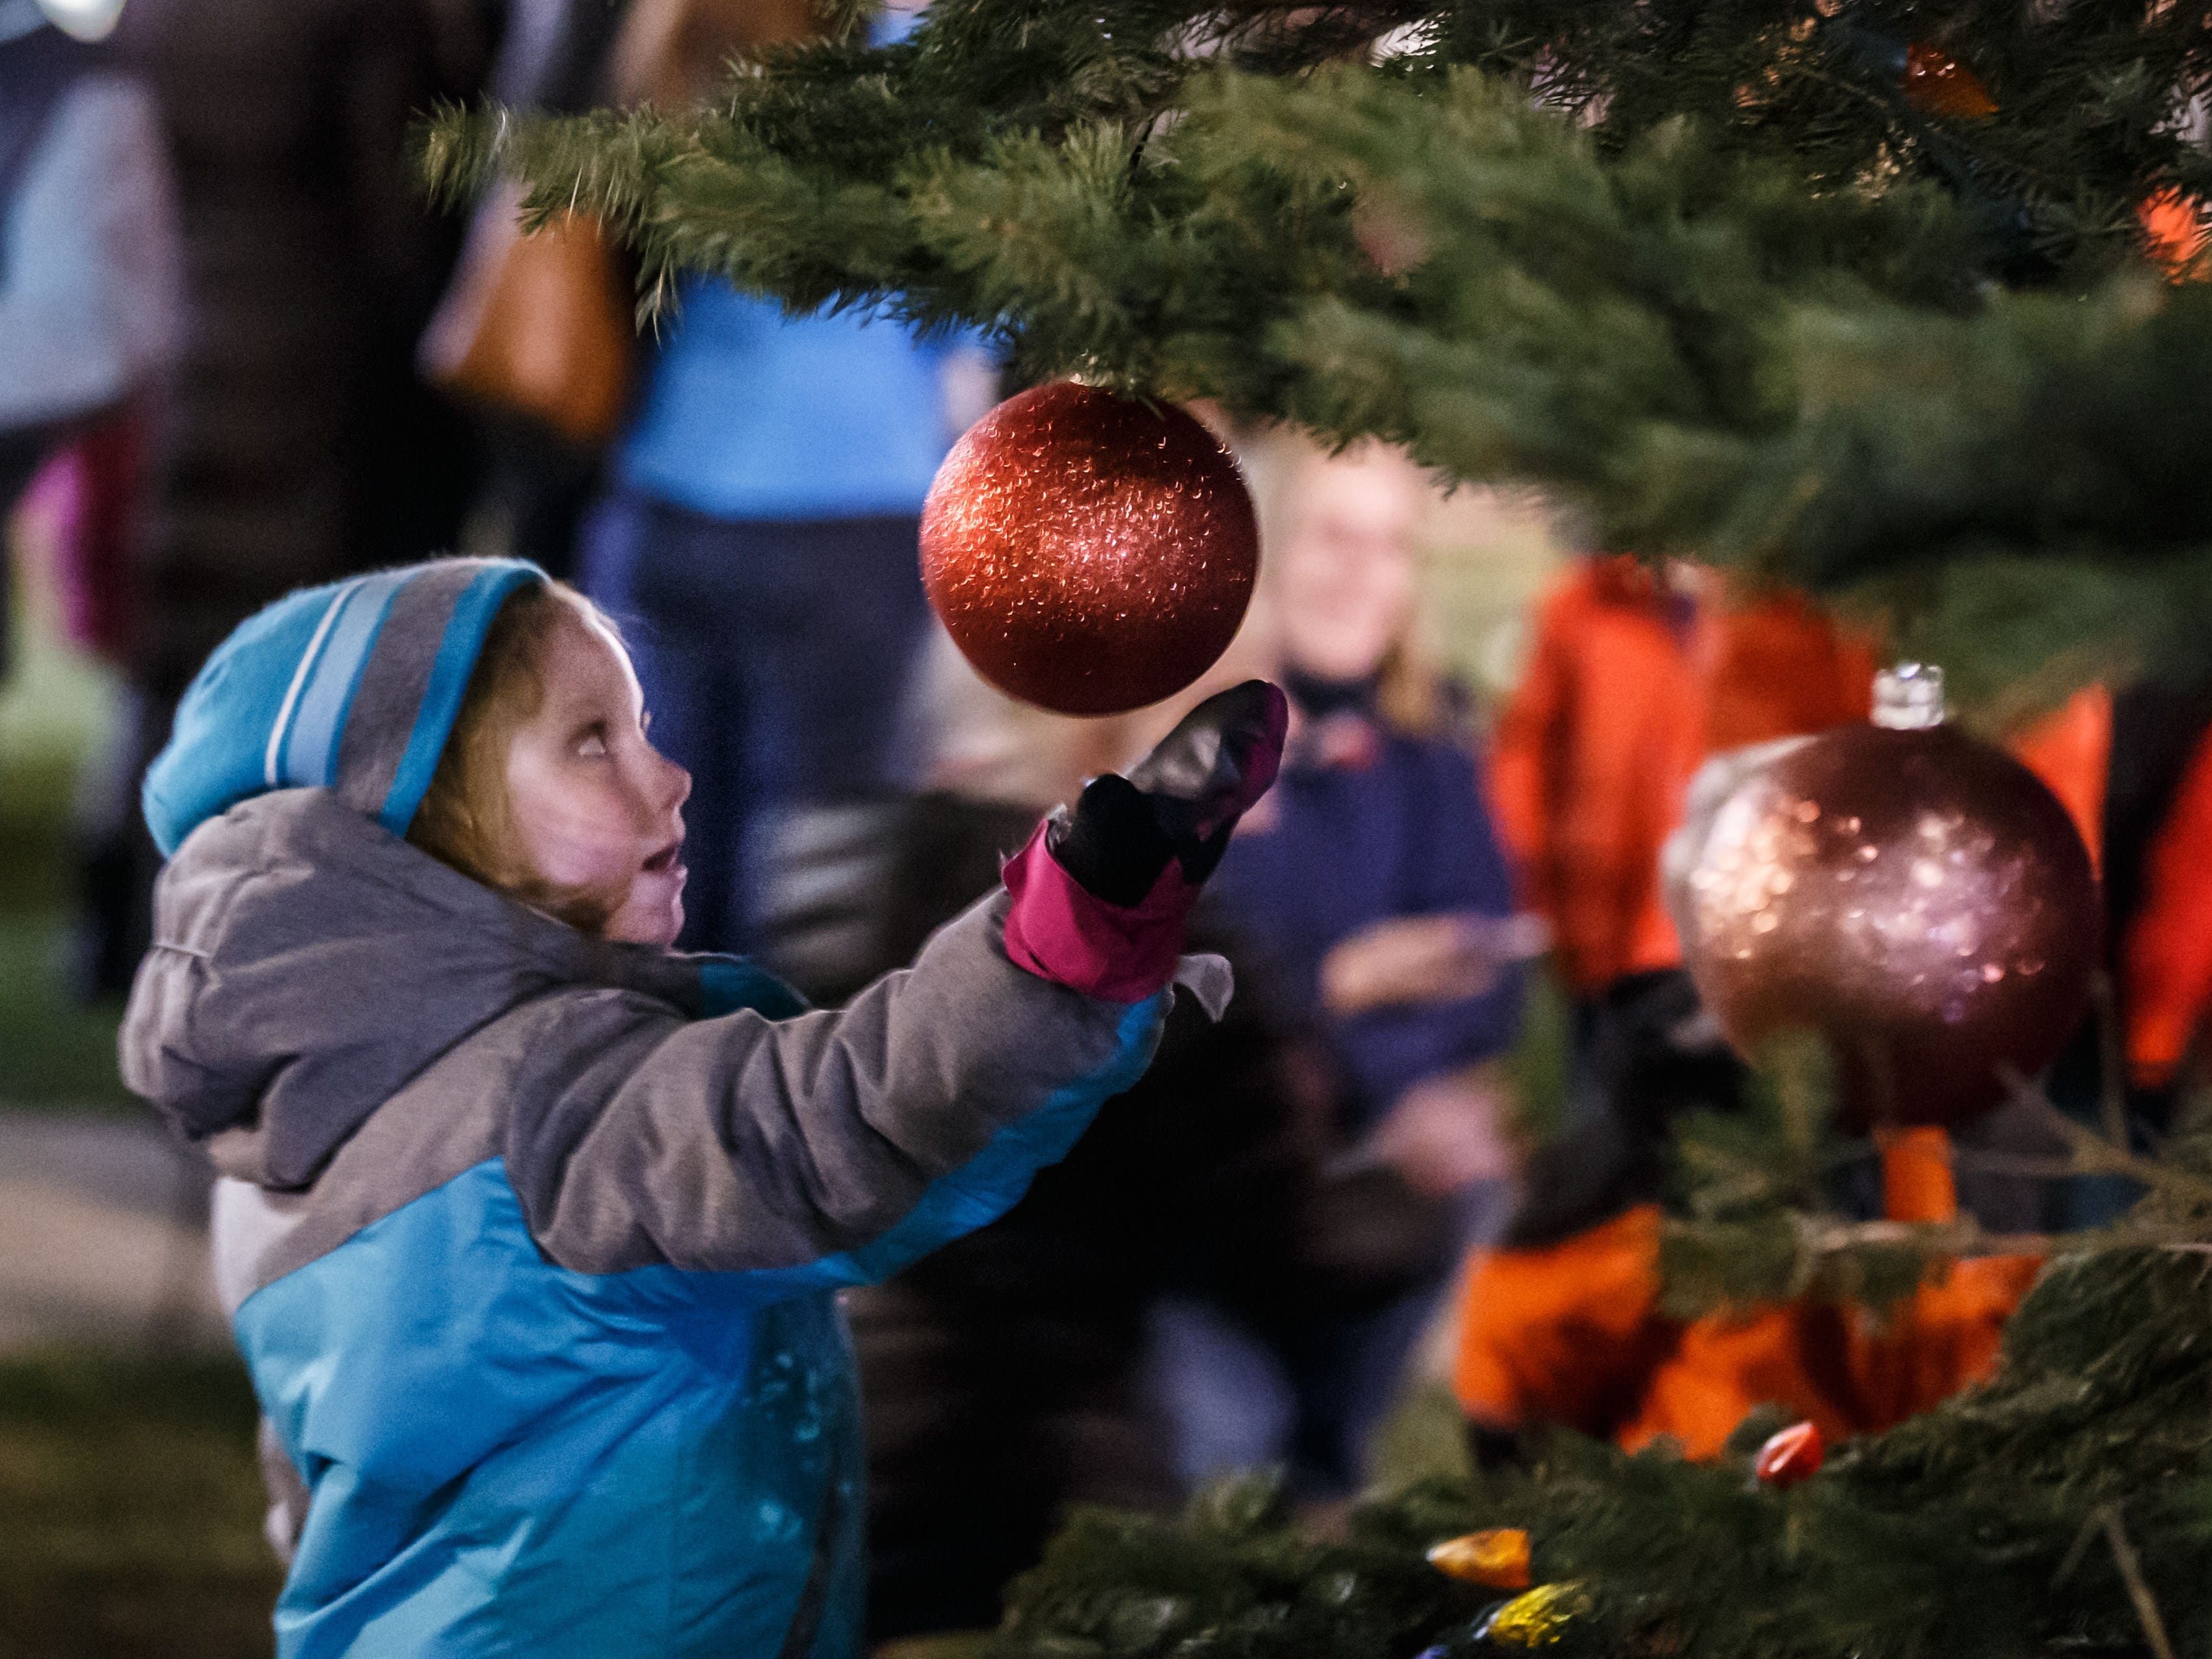 Six-year-old Hadley Andrew of Delafield takes a closer look at an ornament during the annual Delafield Tree Lighting event on Friday, Nov. 16, 2018. The event, hosted by the City of Delafield Tourism, featured live music, free cookies, hot cocoa and more.